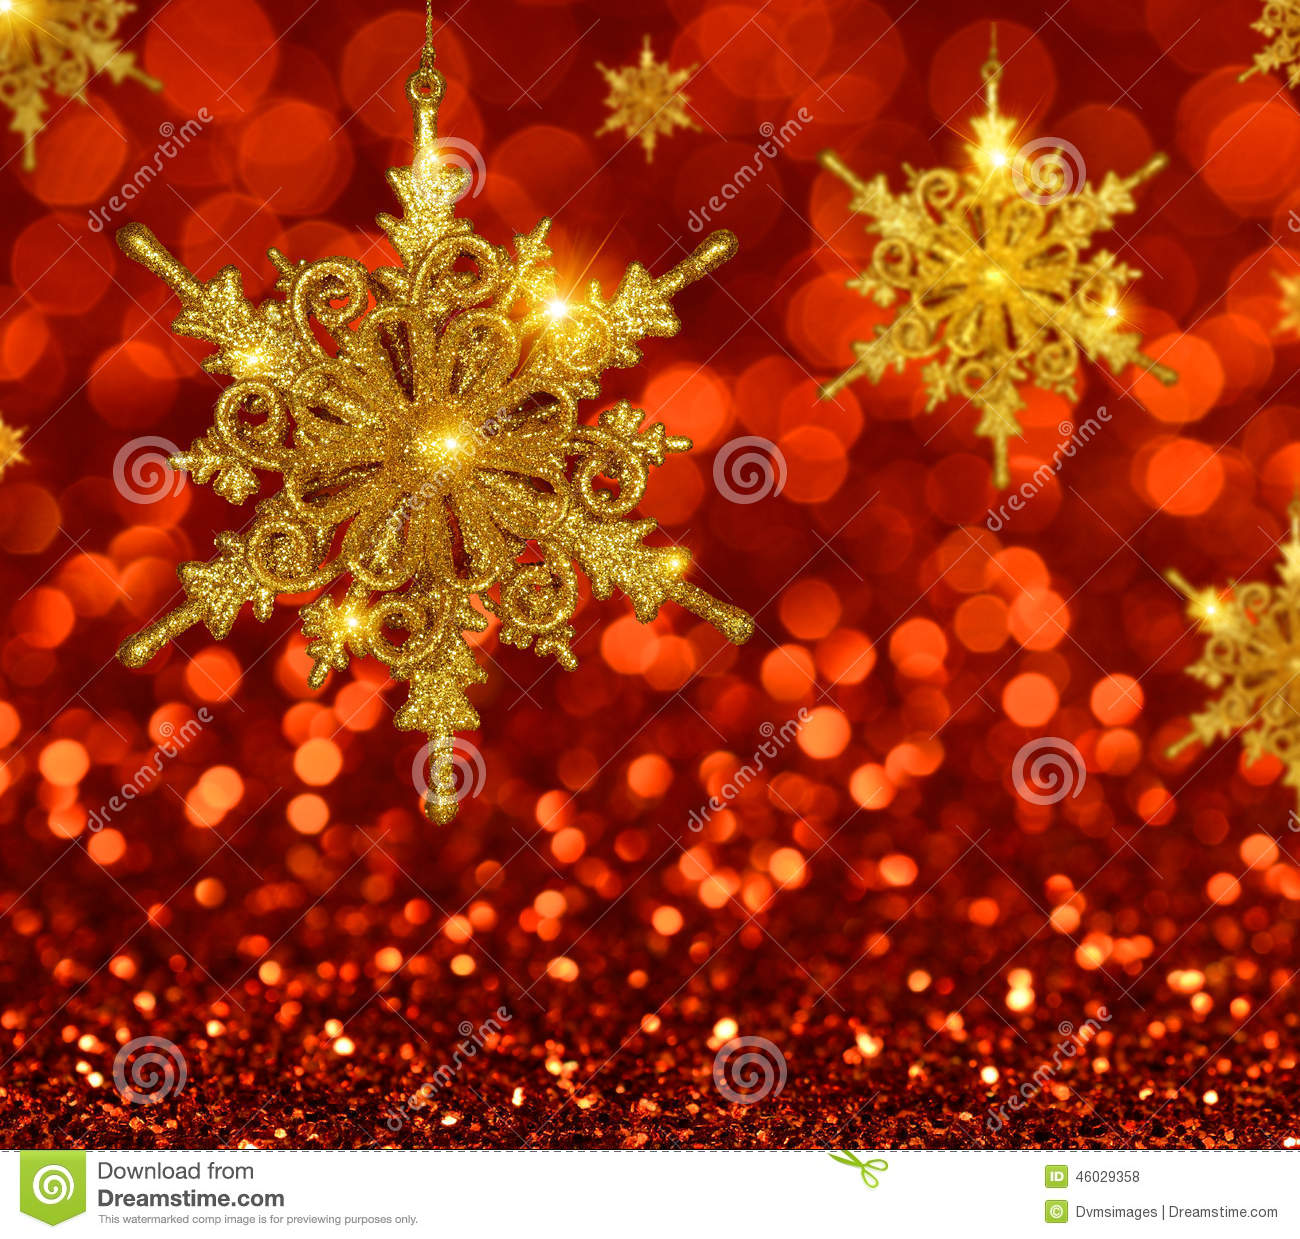 gold christmas snowflake wallpaper - photo #40